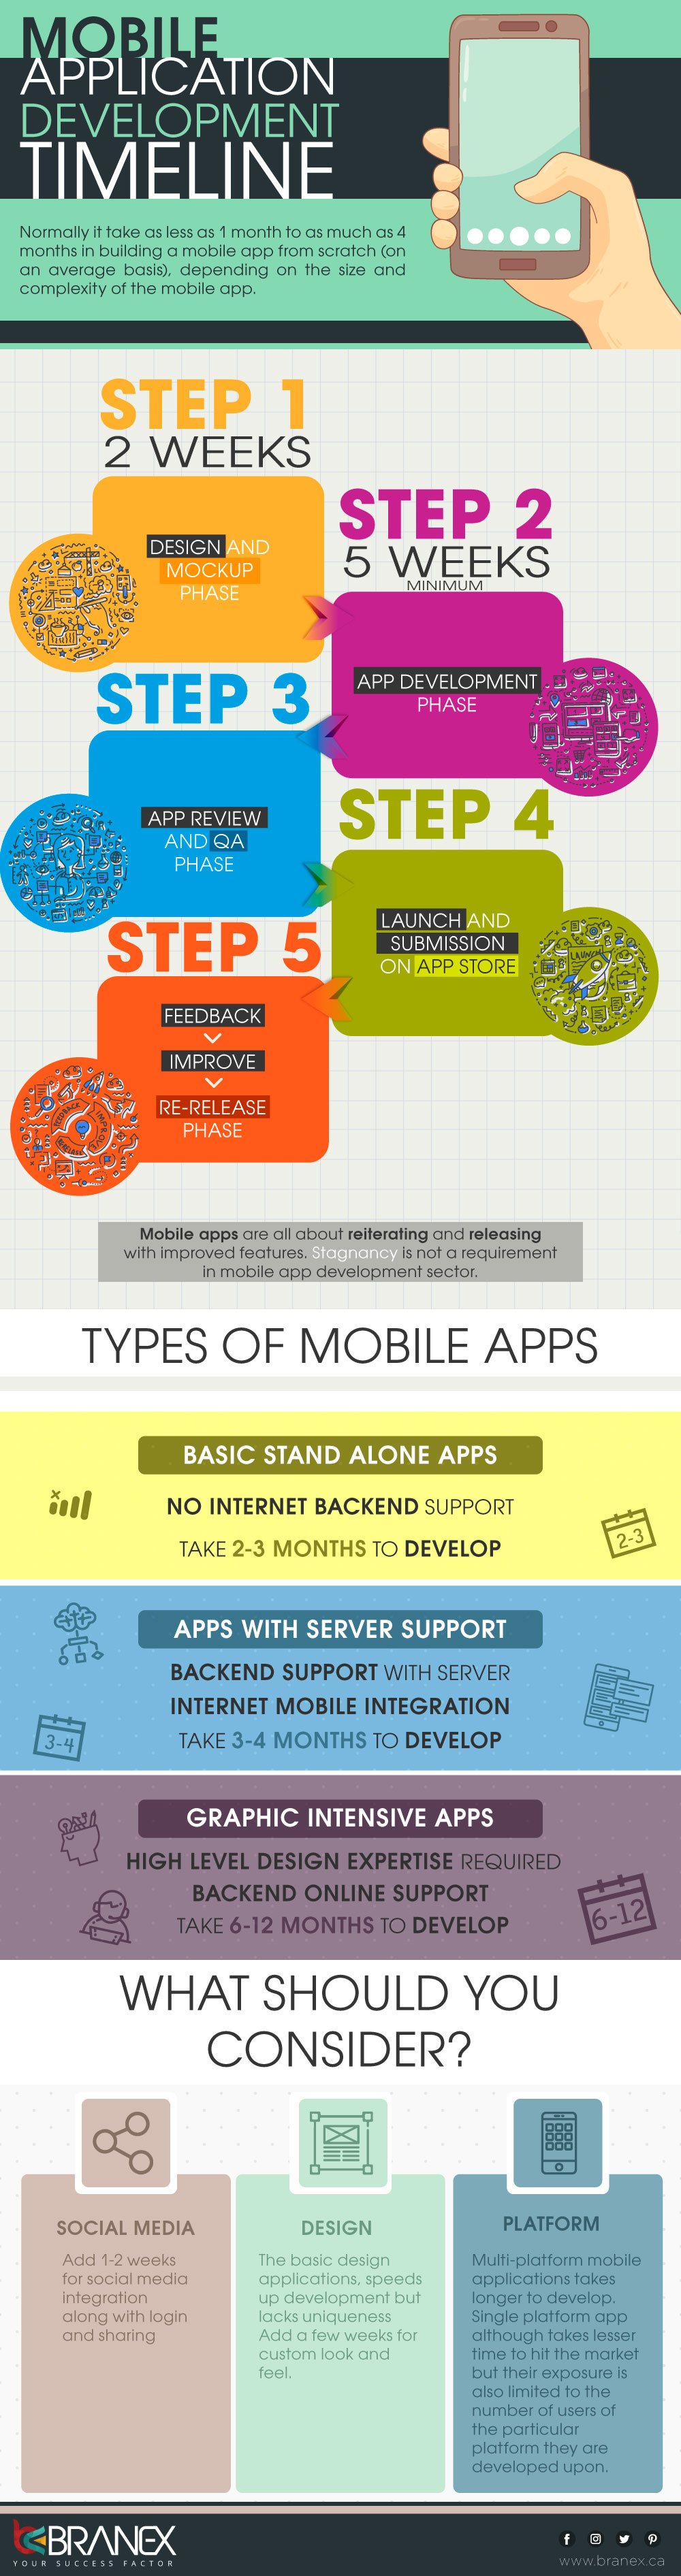 Mobile Apps are Not Child's Play: App Development Timelines - Infographic